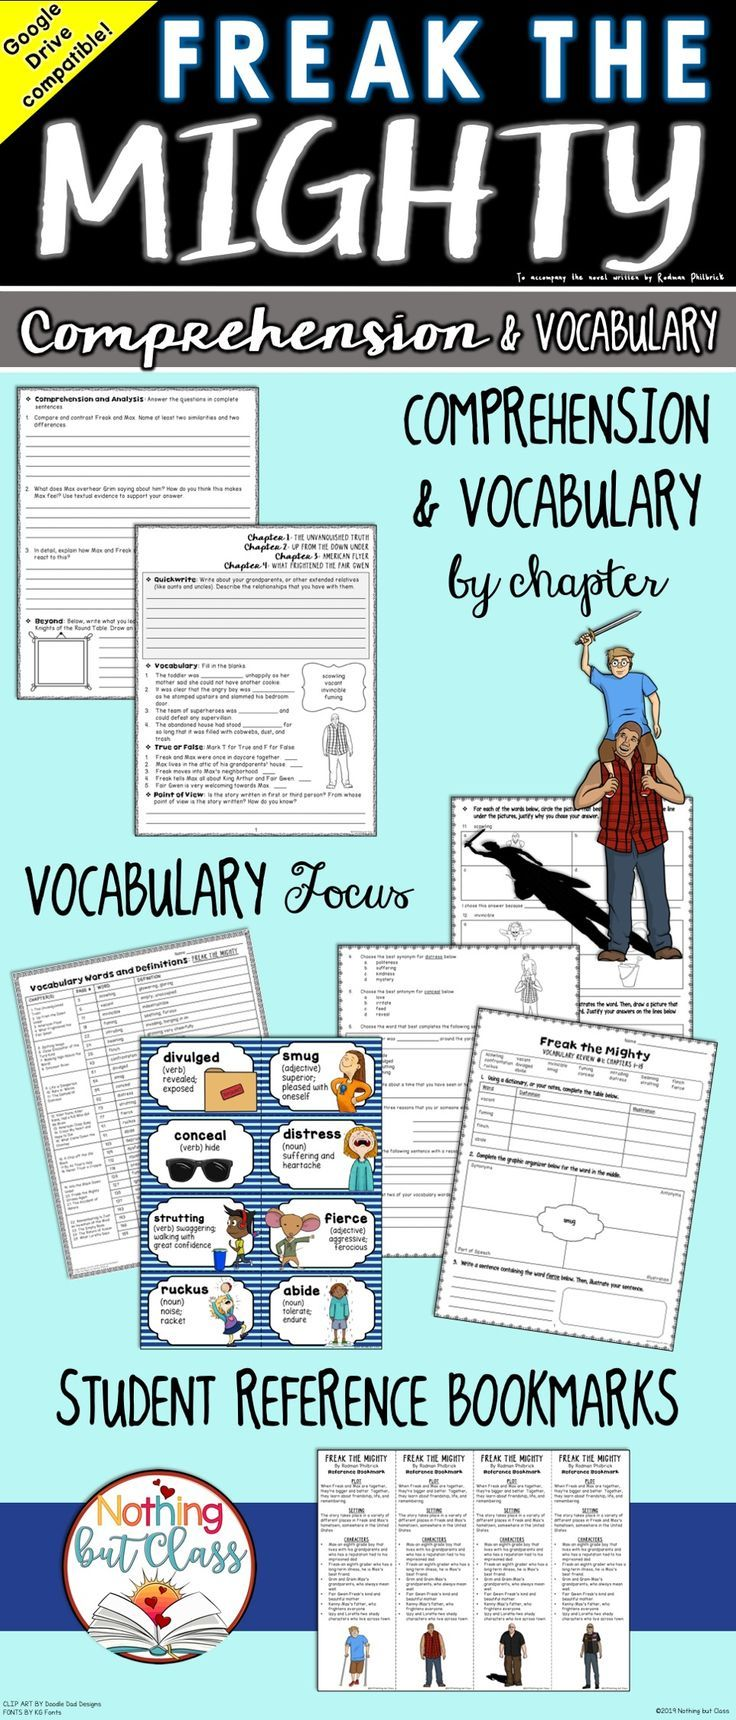 Freak The Mighty Comprehension And Vocabulary By Chapter Distance Learning Freak The Mighty Reading Response Activities Vocabulary